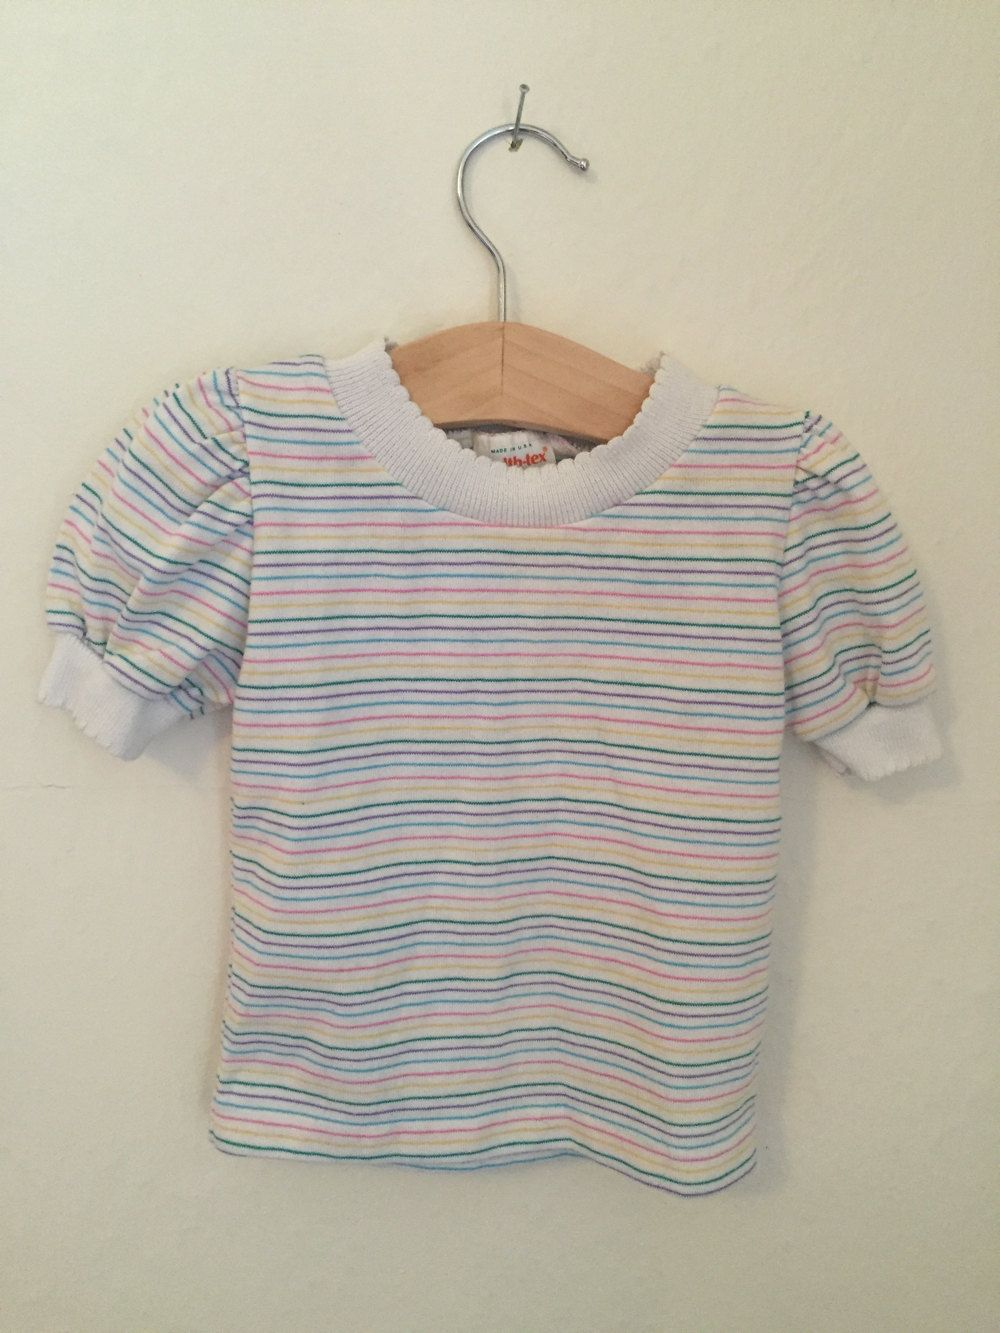 1053f06a5 Vintage Toddler / Baby 80s Health-tex Rainbow Striped Shirt, size 18 months  by…